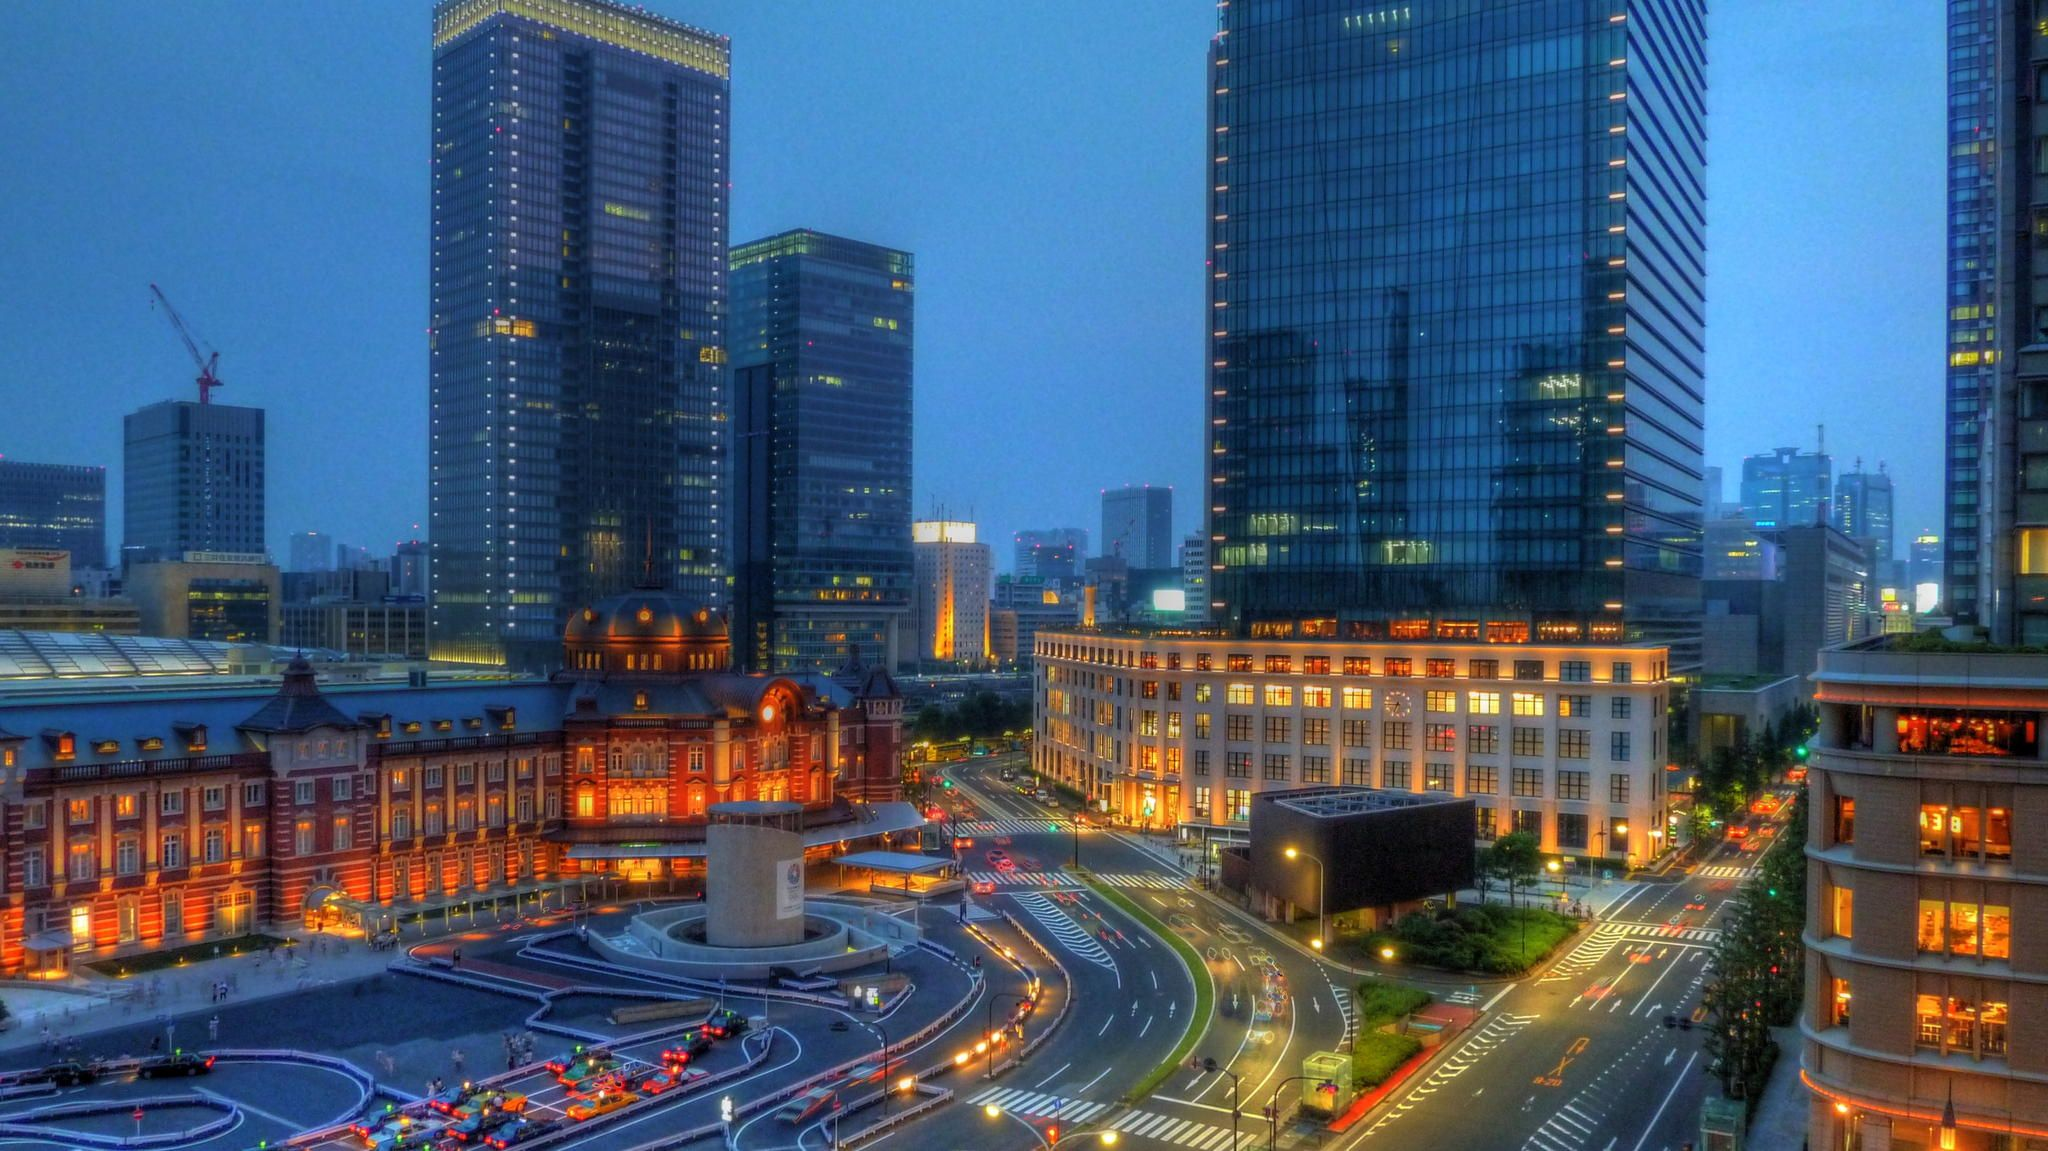 Tokyo Station, Marunouchi by Colin Macleod on 500px